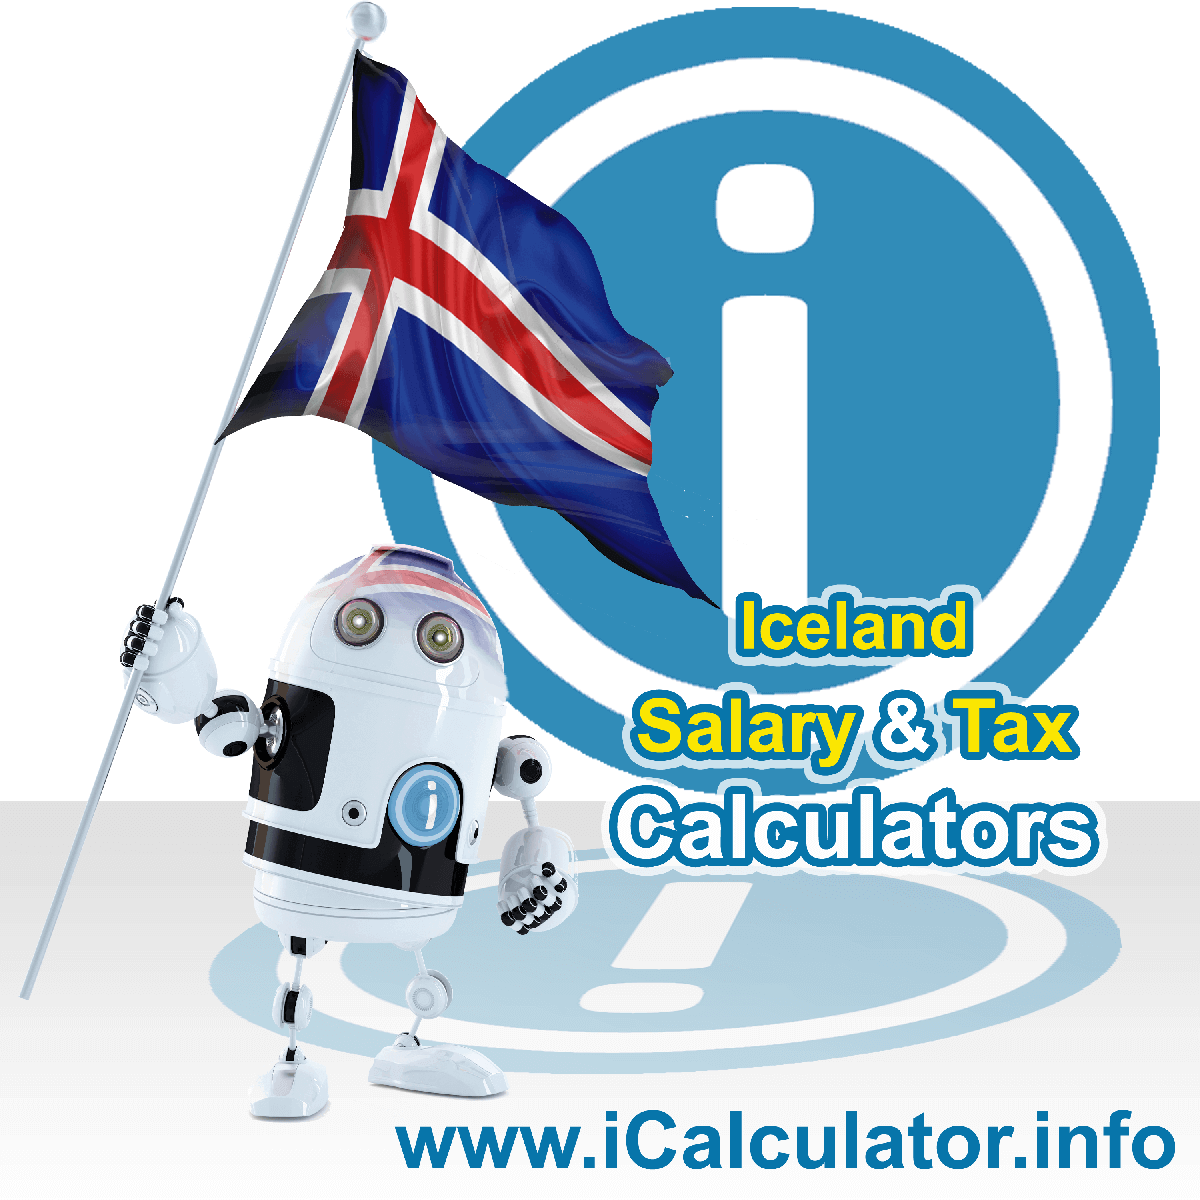 Iceland Tax Calculator. This image shows the Iceland flag and information relating to the tax formula for the Iceland Salary Calculator